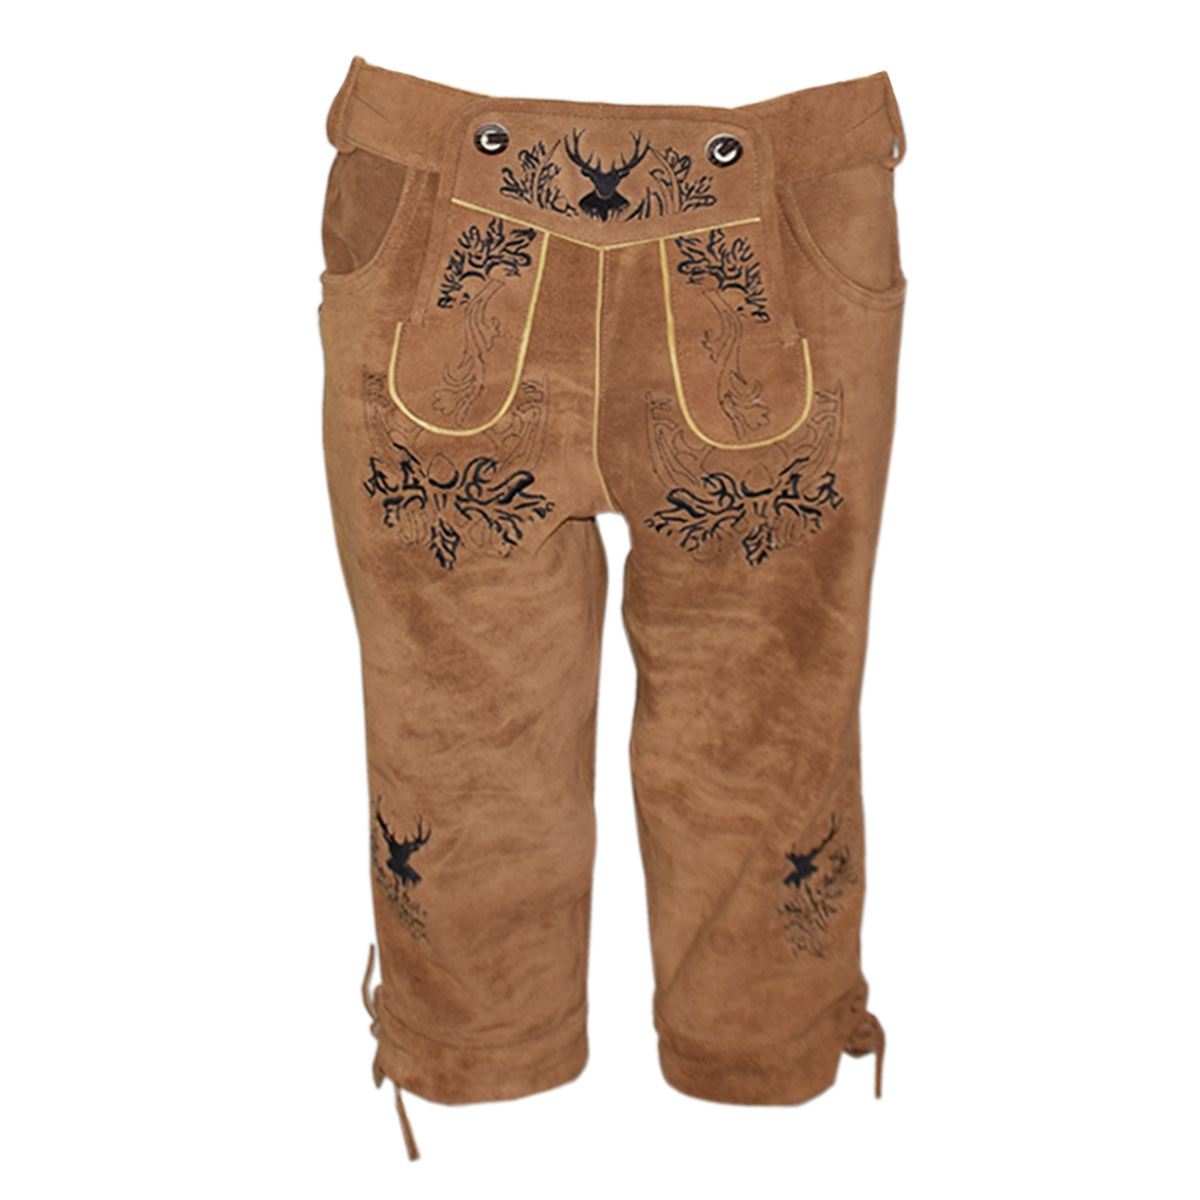 DARK BROWN MEN LONG LEDERHOSEN WITH BLACK ART WORK